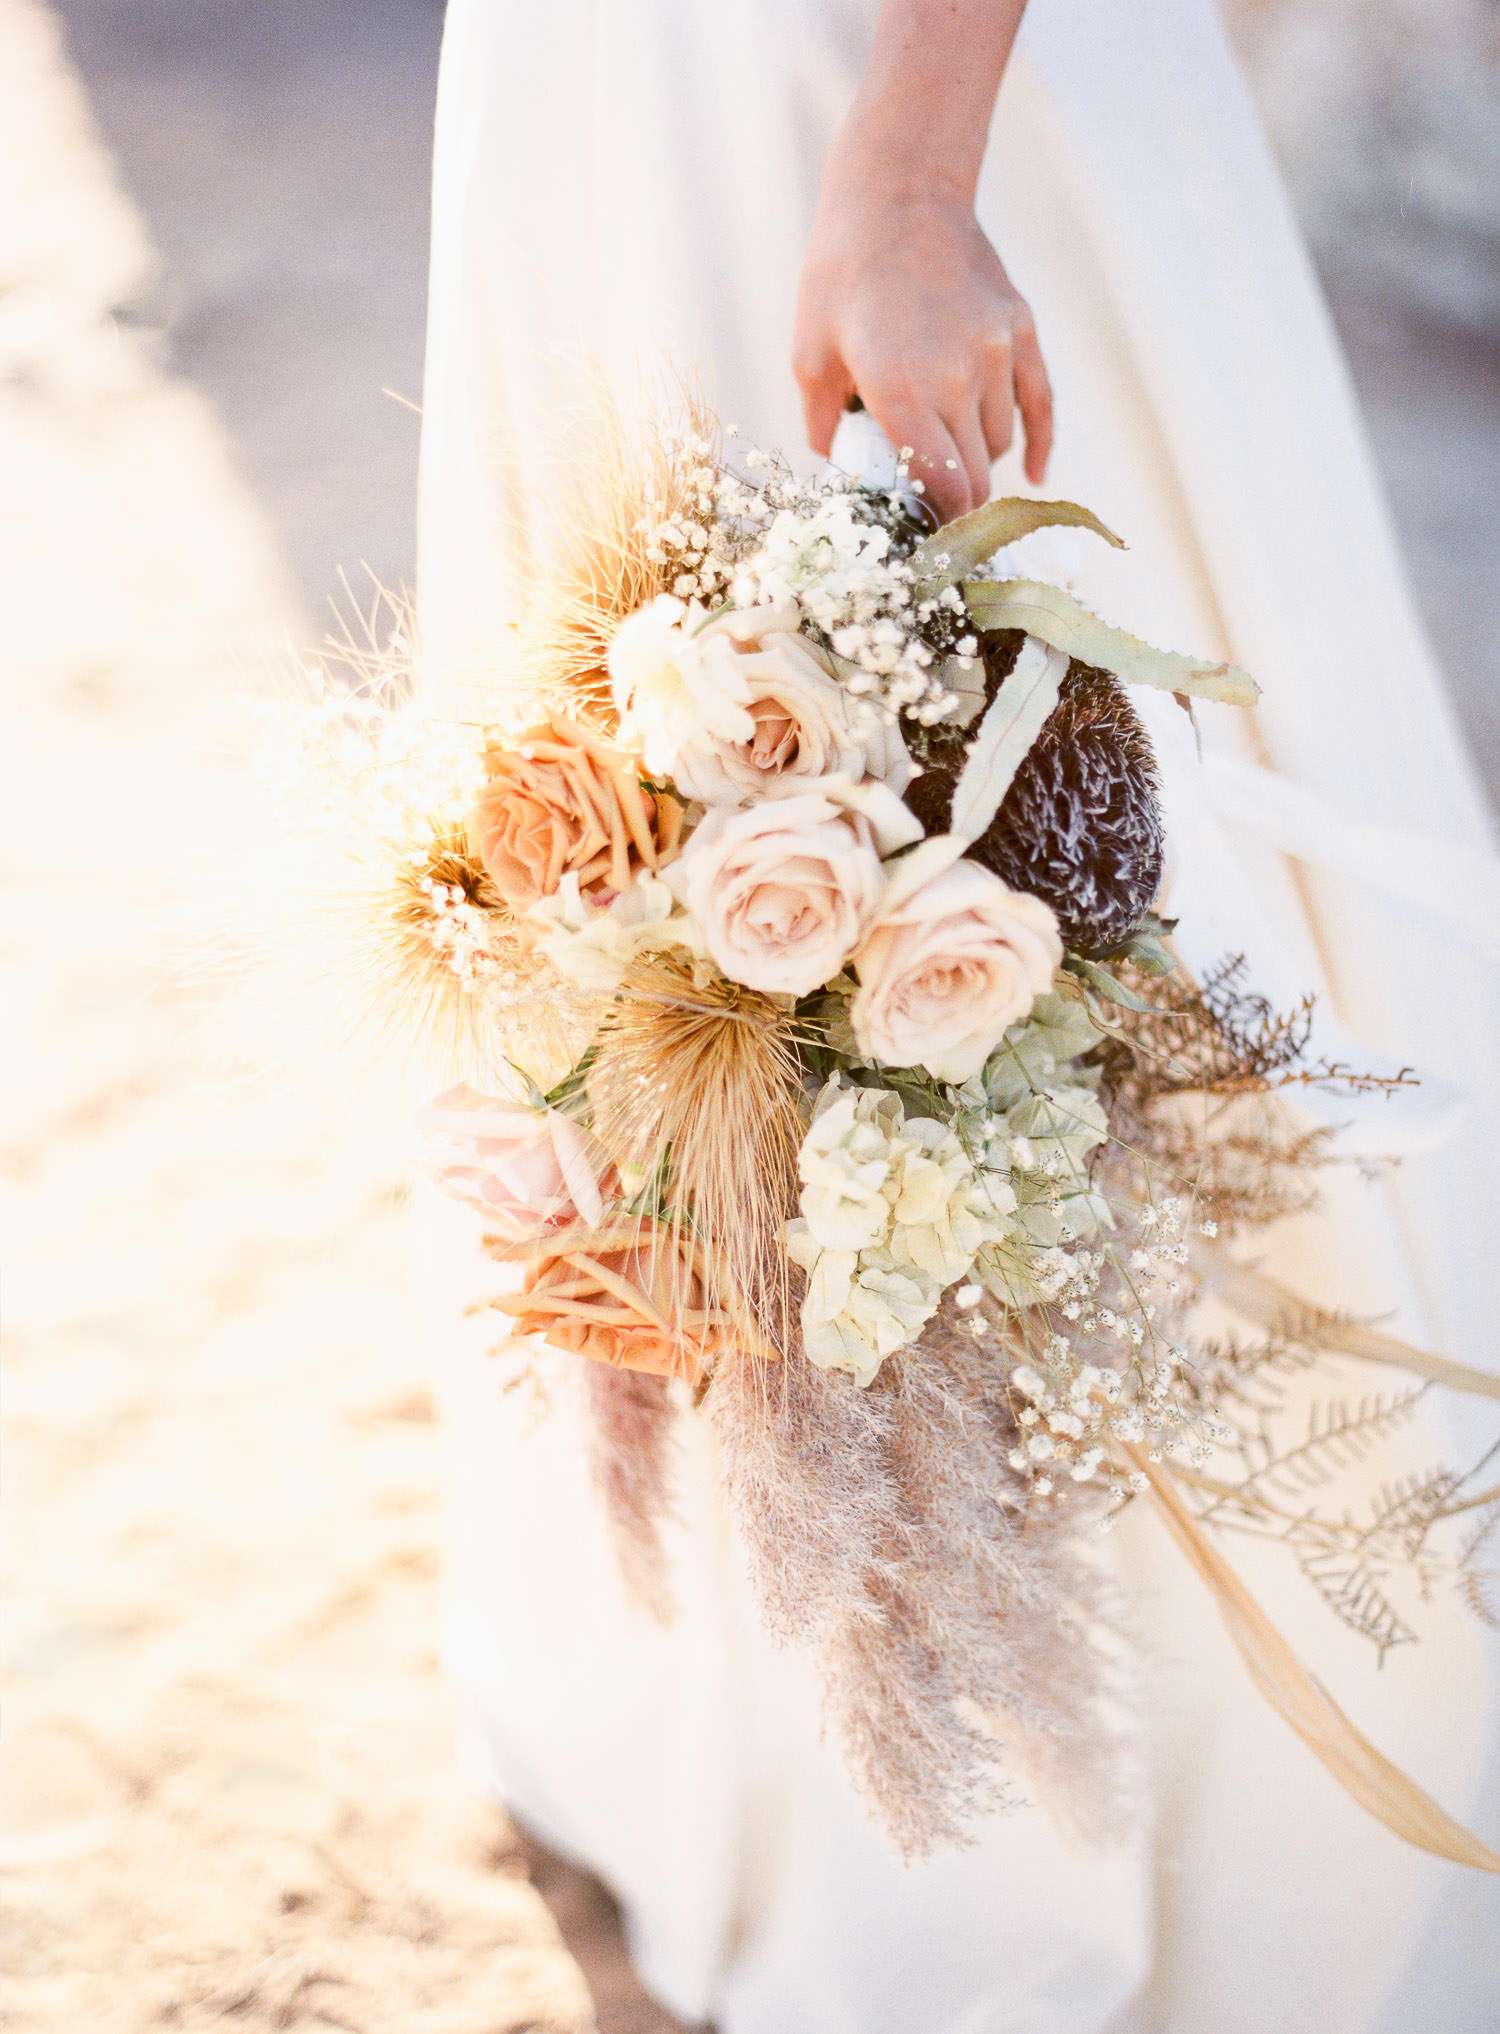 Beautiful bouquet by Rose and Bud for elopement in Perth at Perry's Paddock